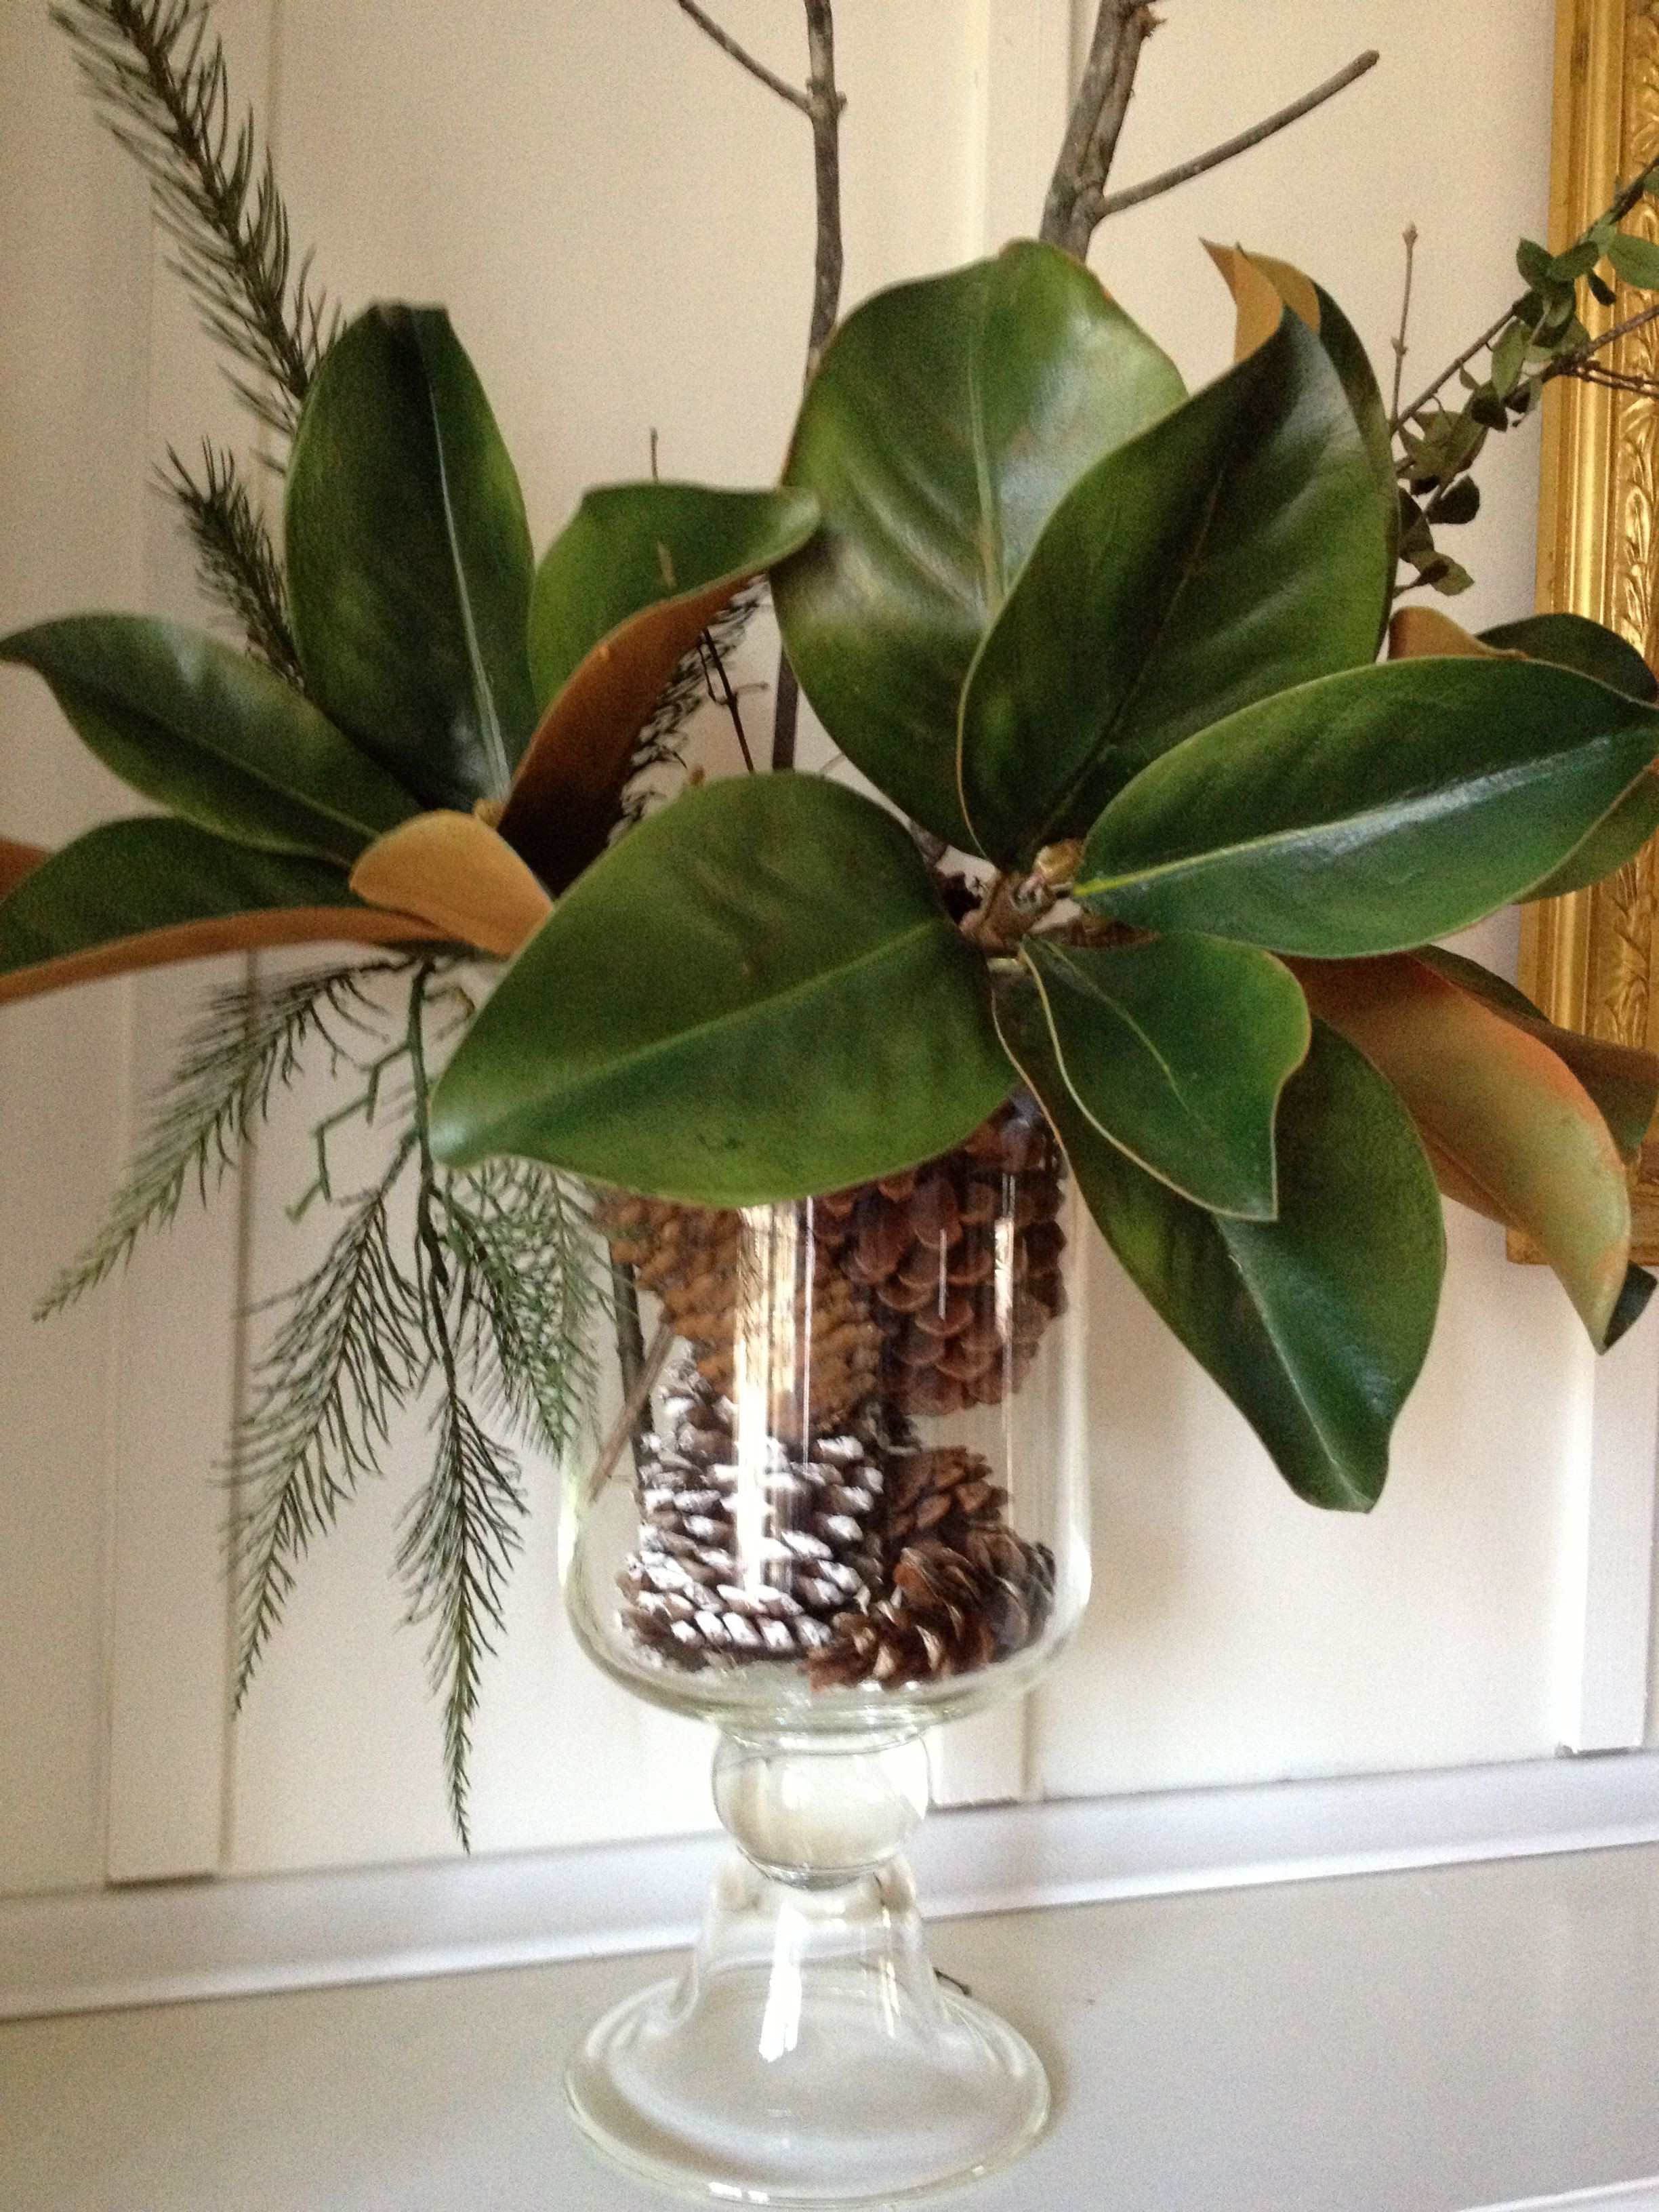 Southern Living at Home Vase Of Easy Holiday Arrangement Love the Magnolia Leaves Wedding with Regard to Easy Holiday Arrangement Love the Magnolia Leaves Wedding southern Christmas